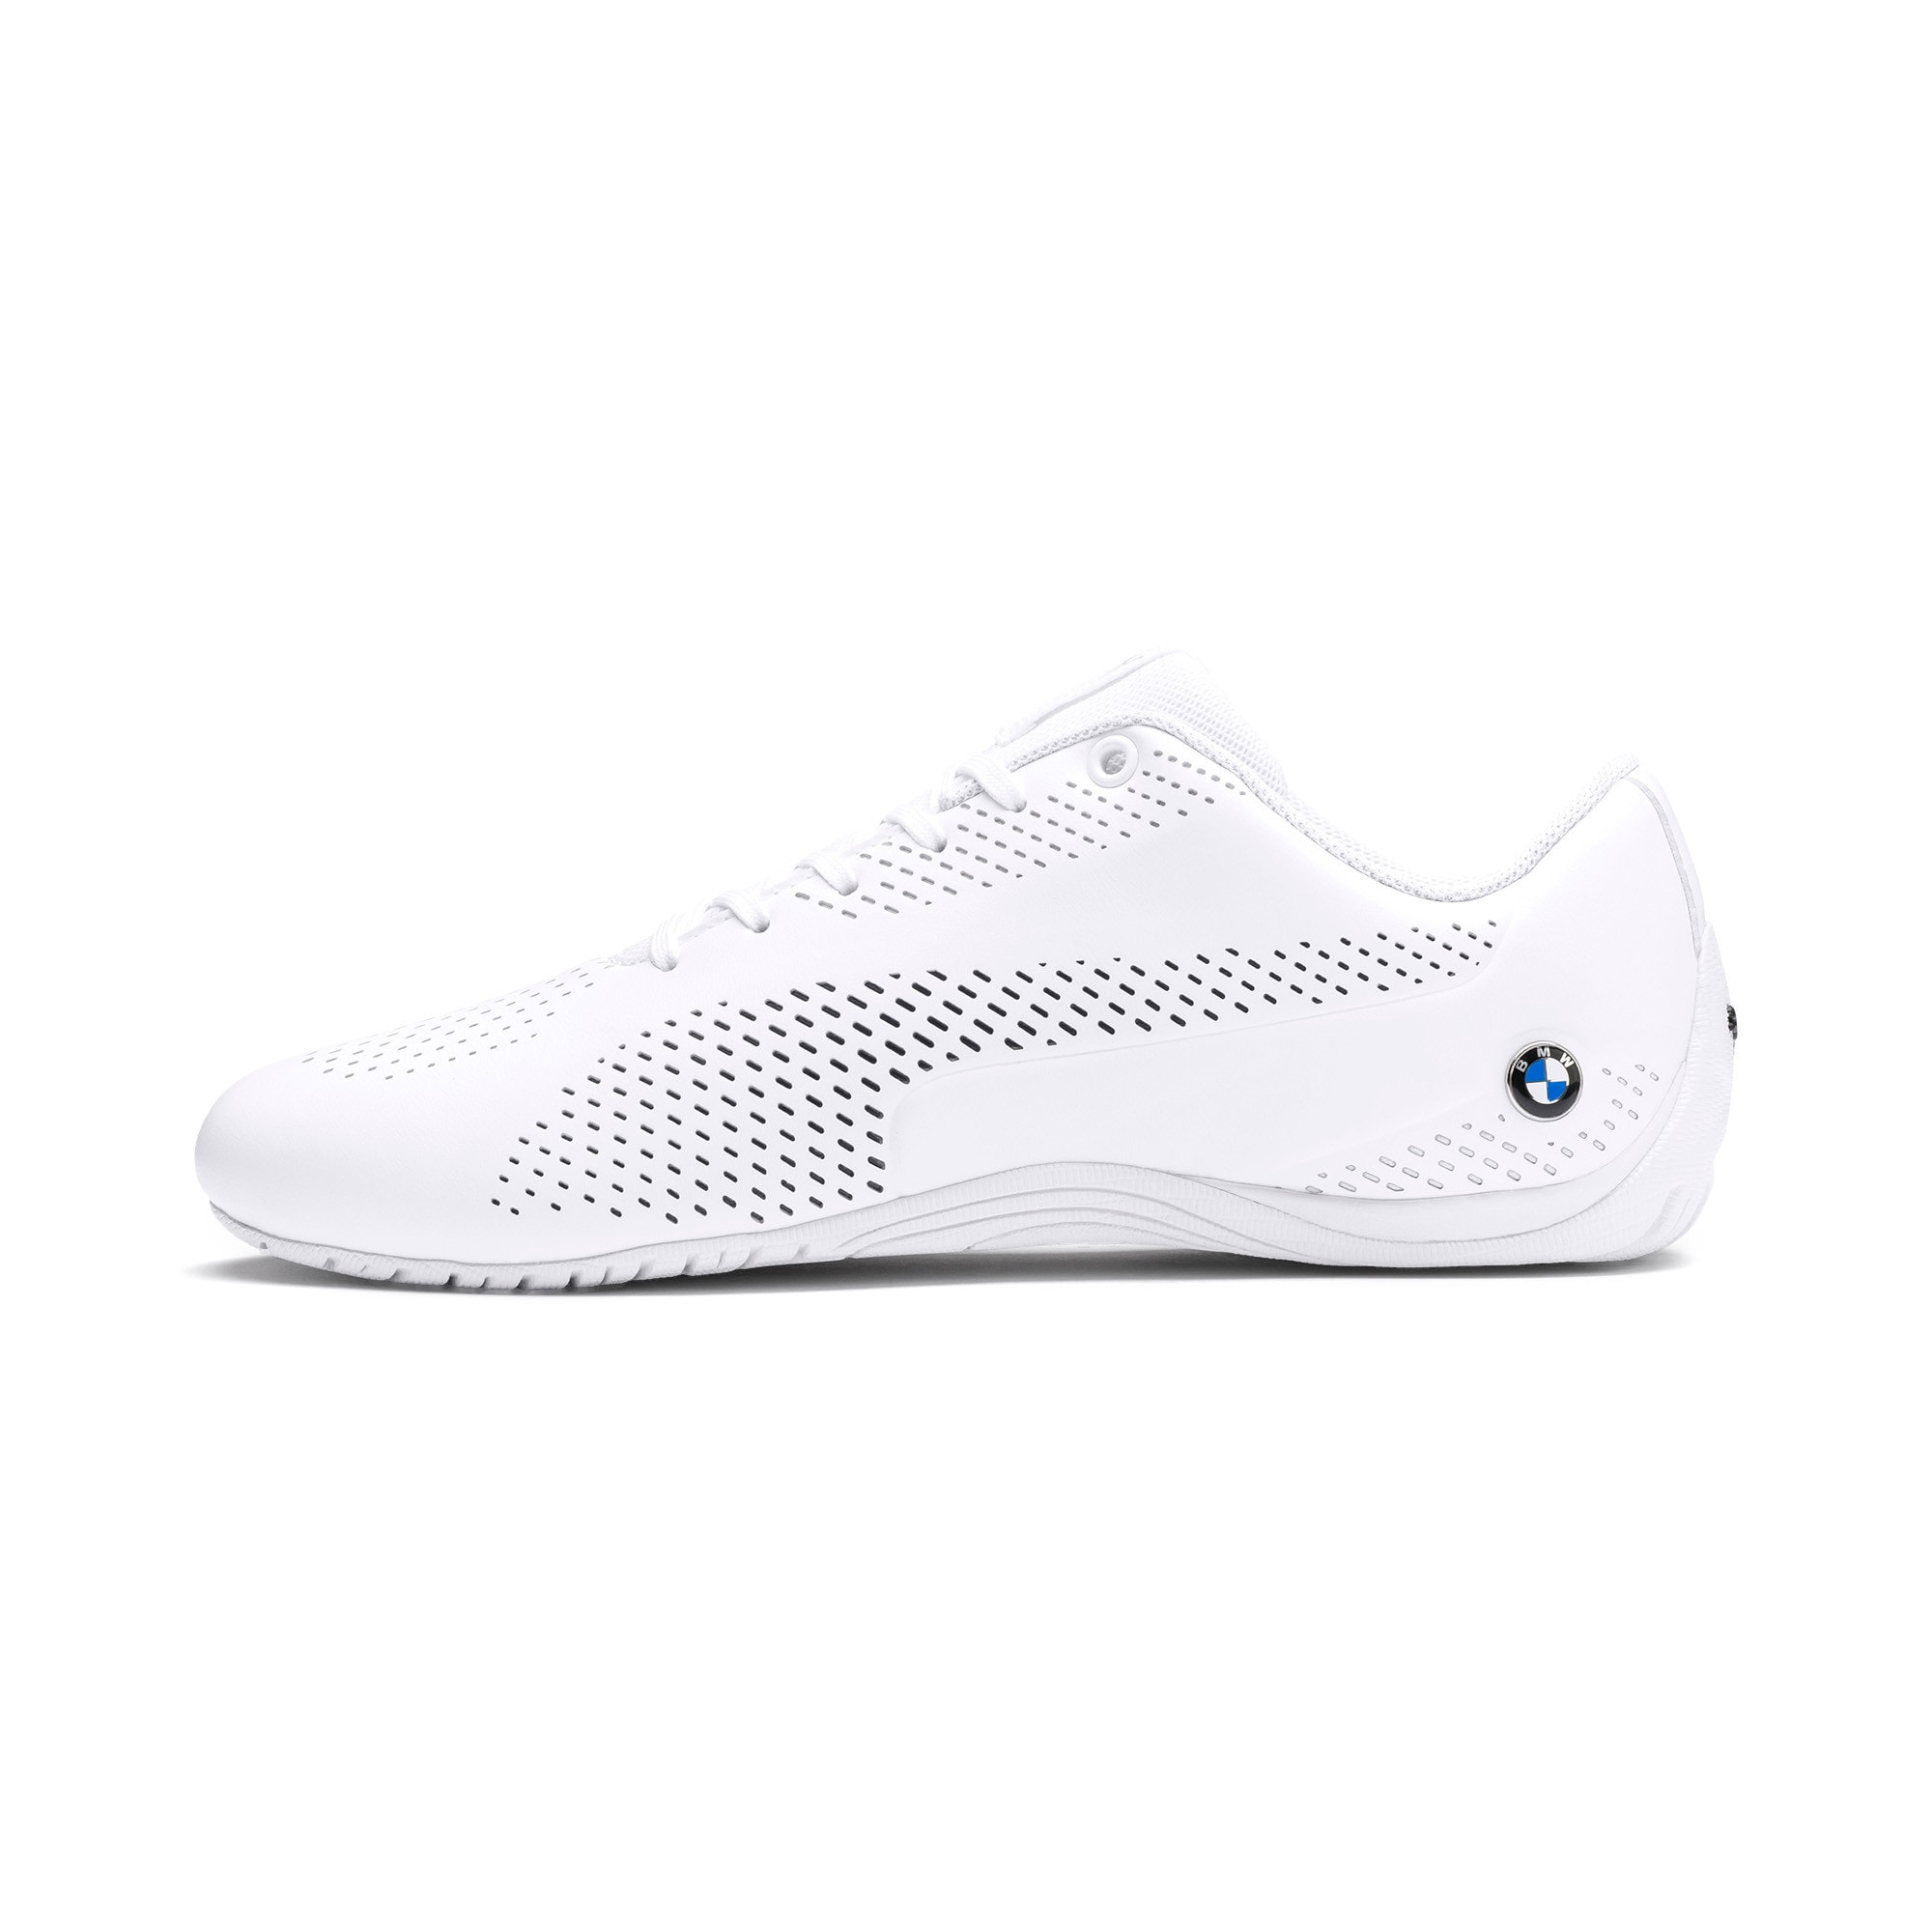 Thumbnail 1 of Scarpe BMW M Motorsport Drift Cat Ultra 5 II, Puma White-Puma Black, medium